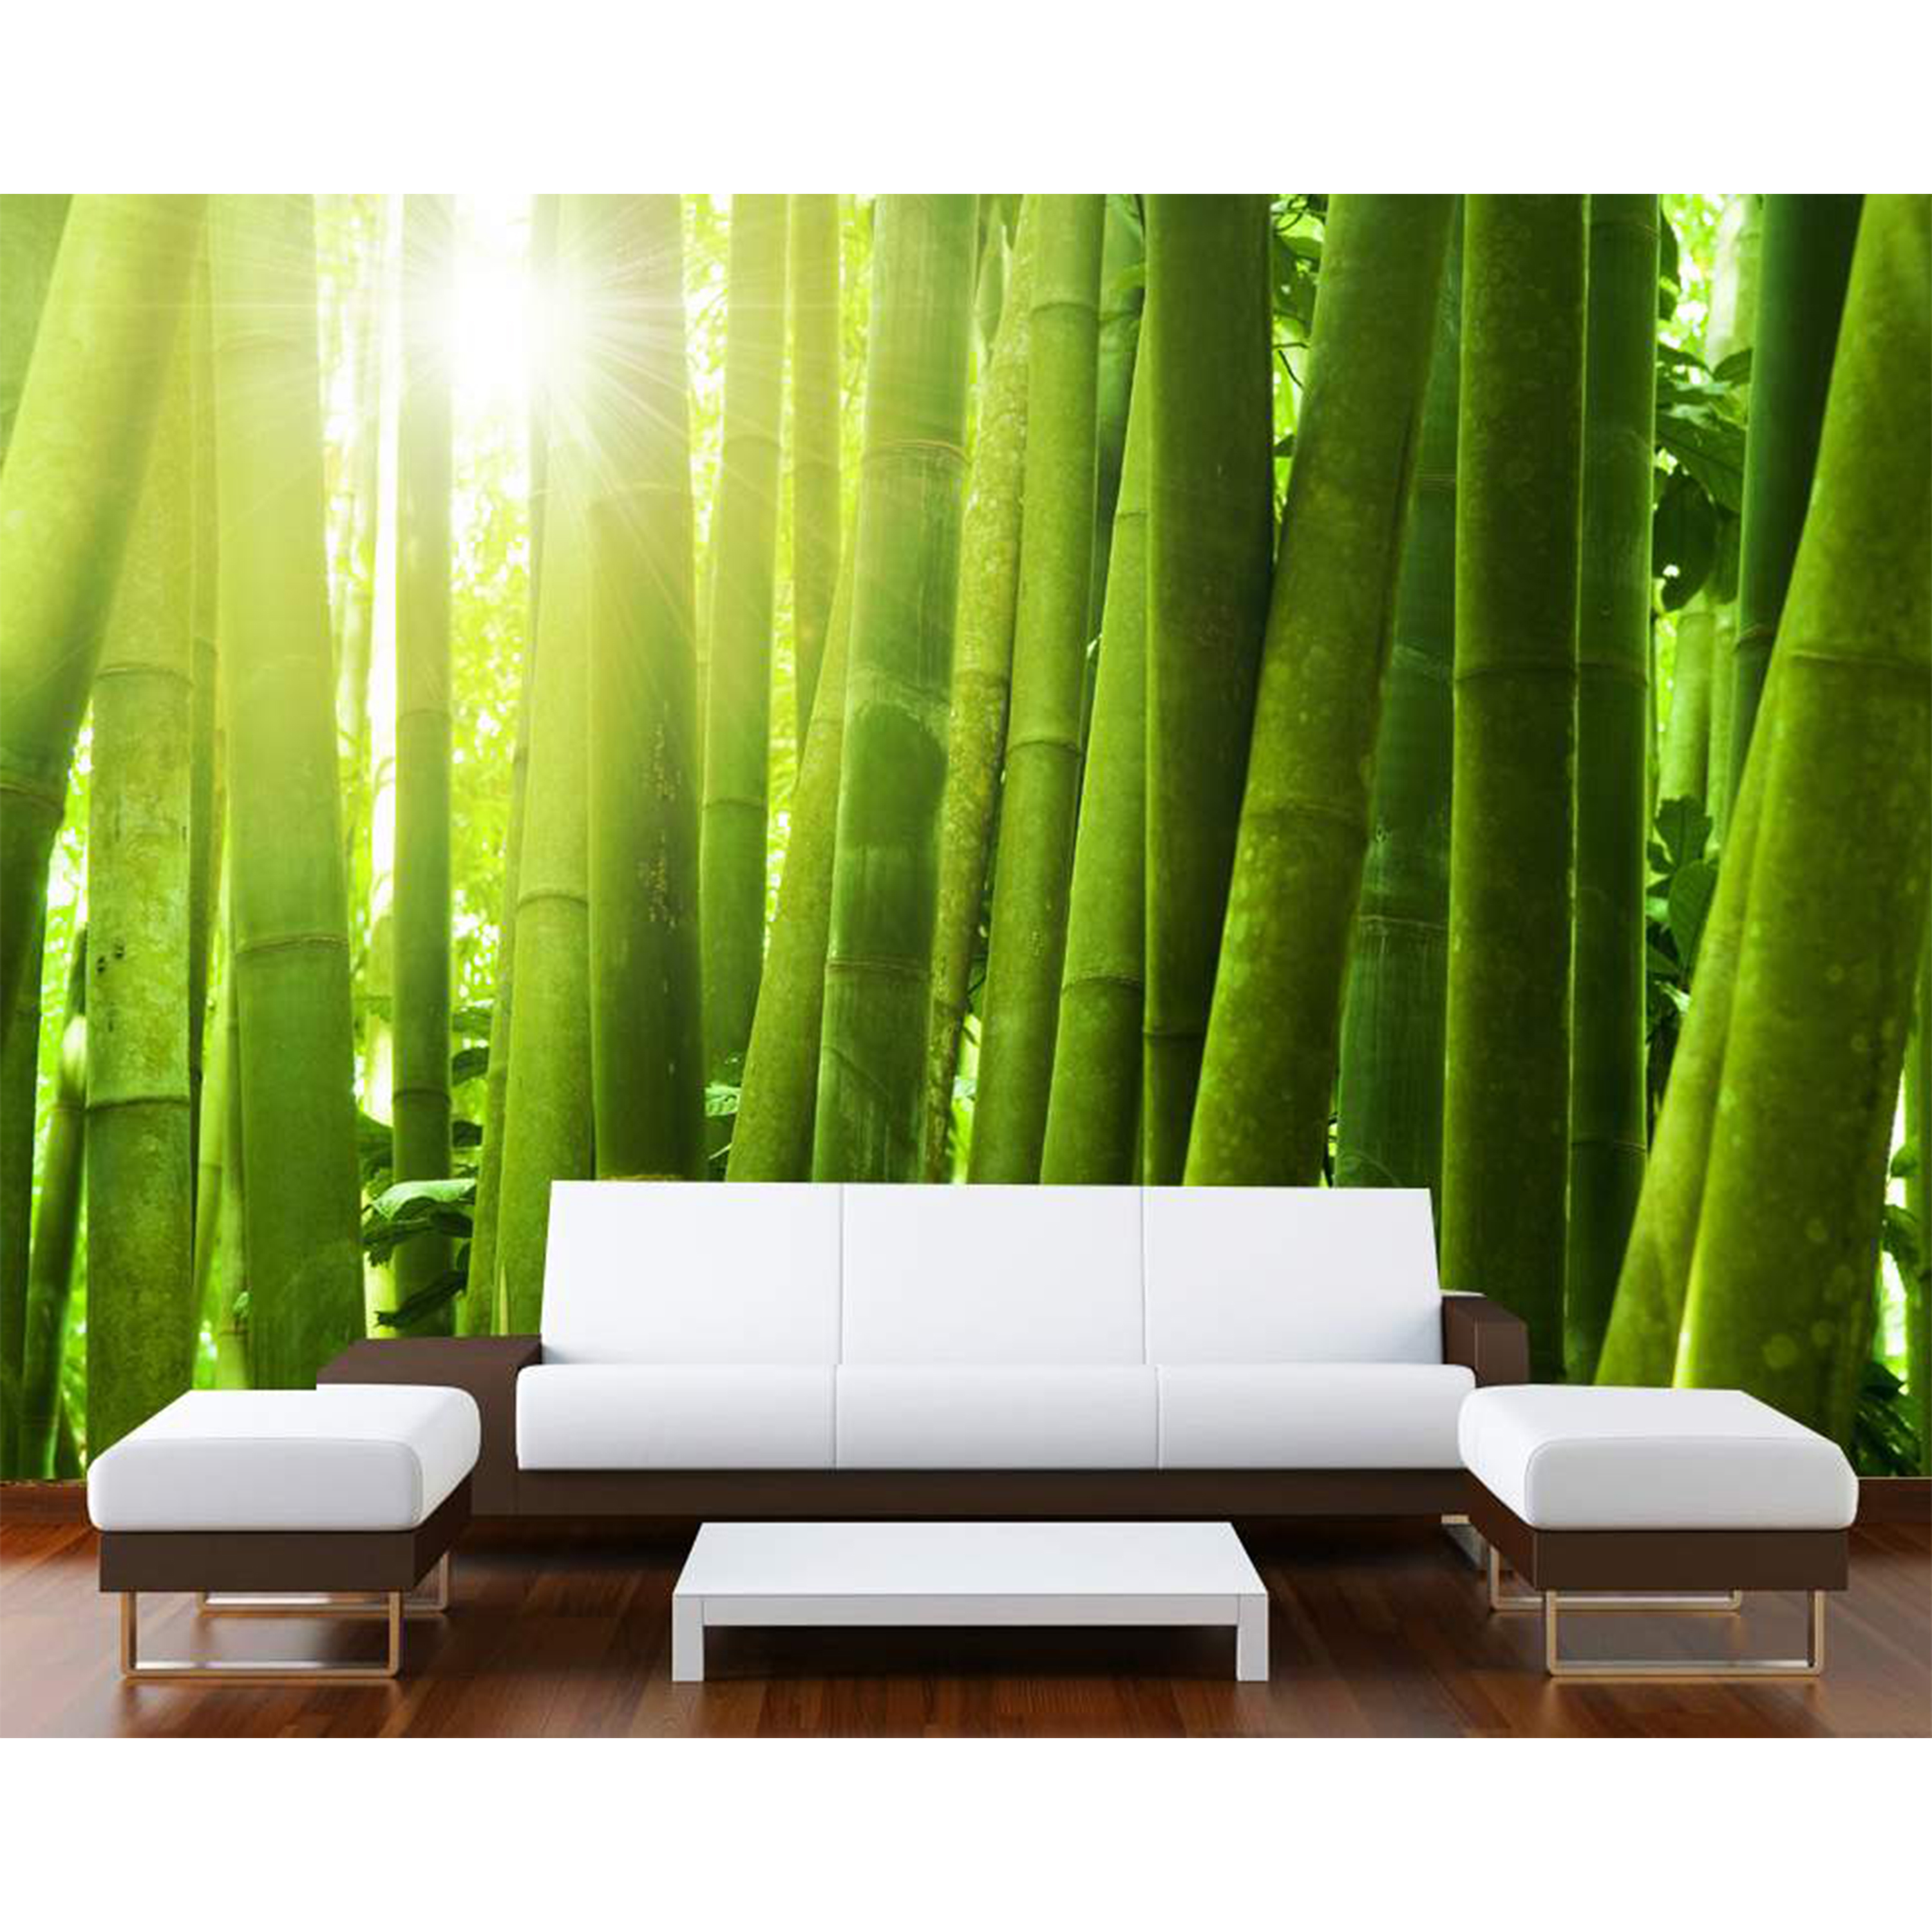 "Startonight Mural Wall Art Green Bamboo Illuminated Nature Landscapes  Wallpaper Photo 5 Stars Gift Large 10 x 28,82 '' x 50,4 '' Total 8'4""x 12'"